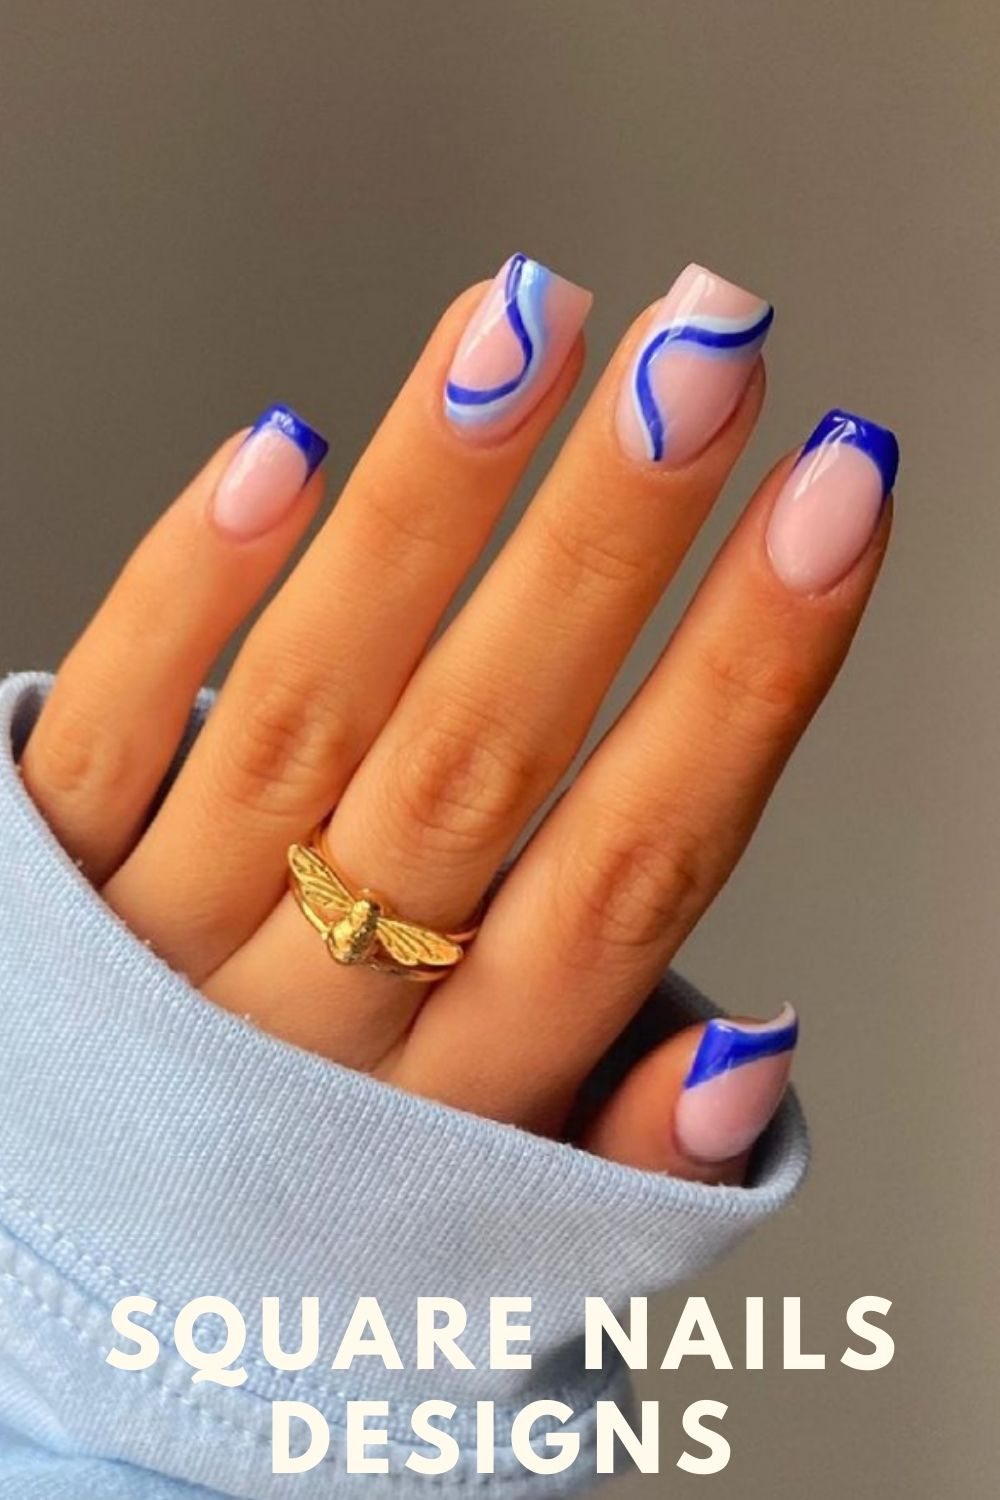 Glamorous nails in dark blue and light blue